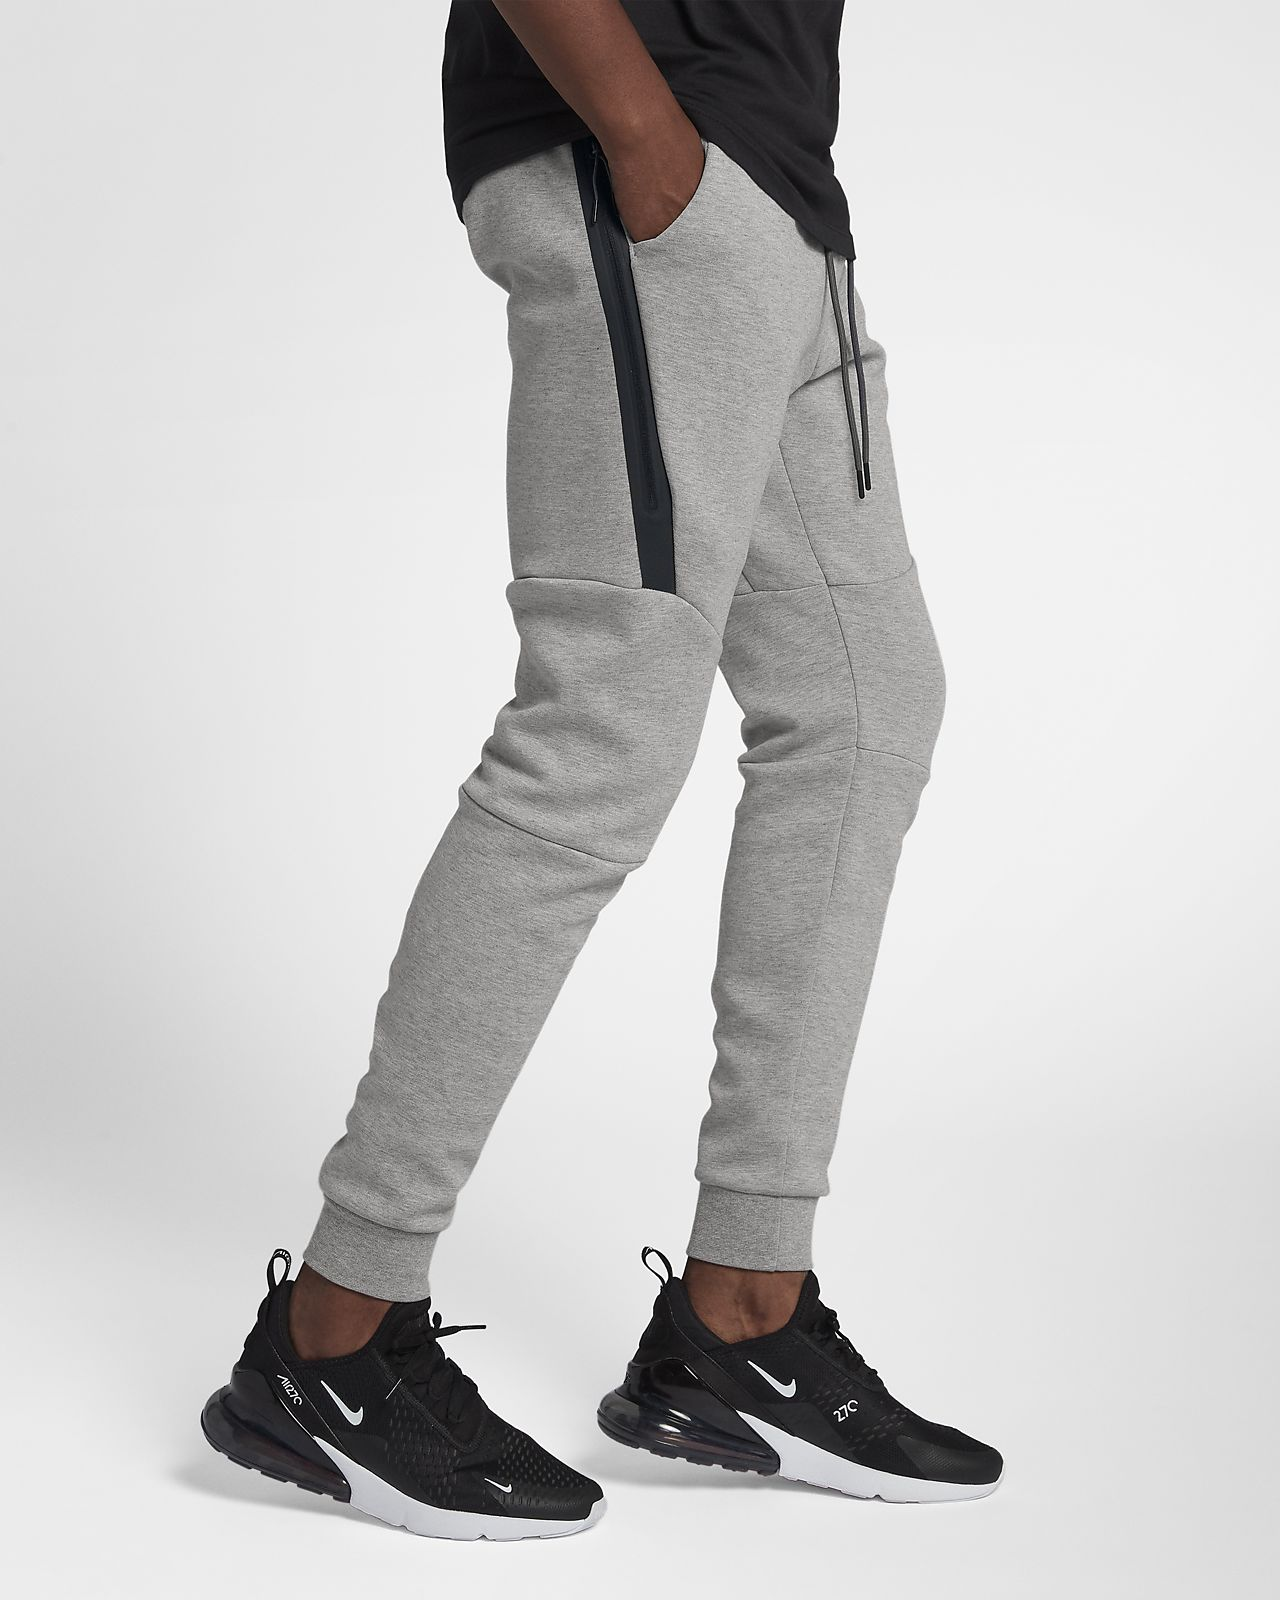 360c5ebc766d Low Resolution Nike Sportswear Tech Fleece Men s Joggers Nike Sportswear  Tech Fleece Men s Joggers